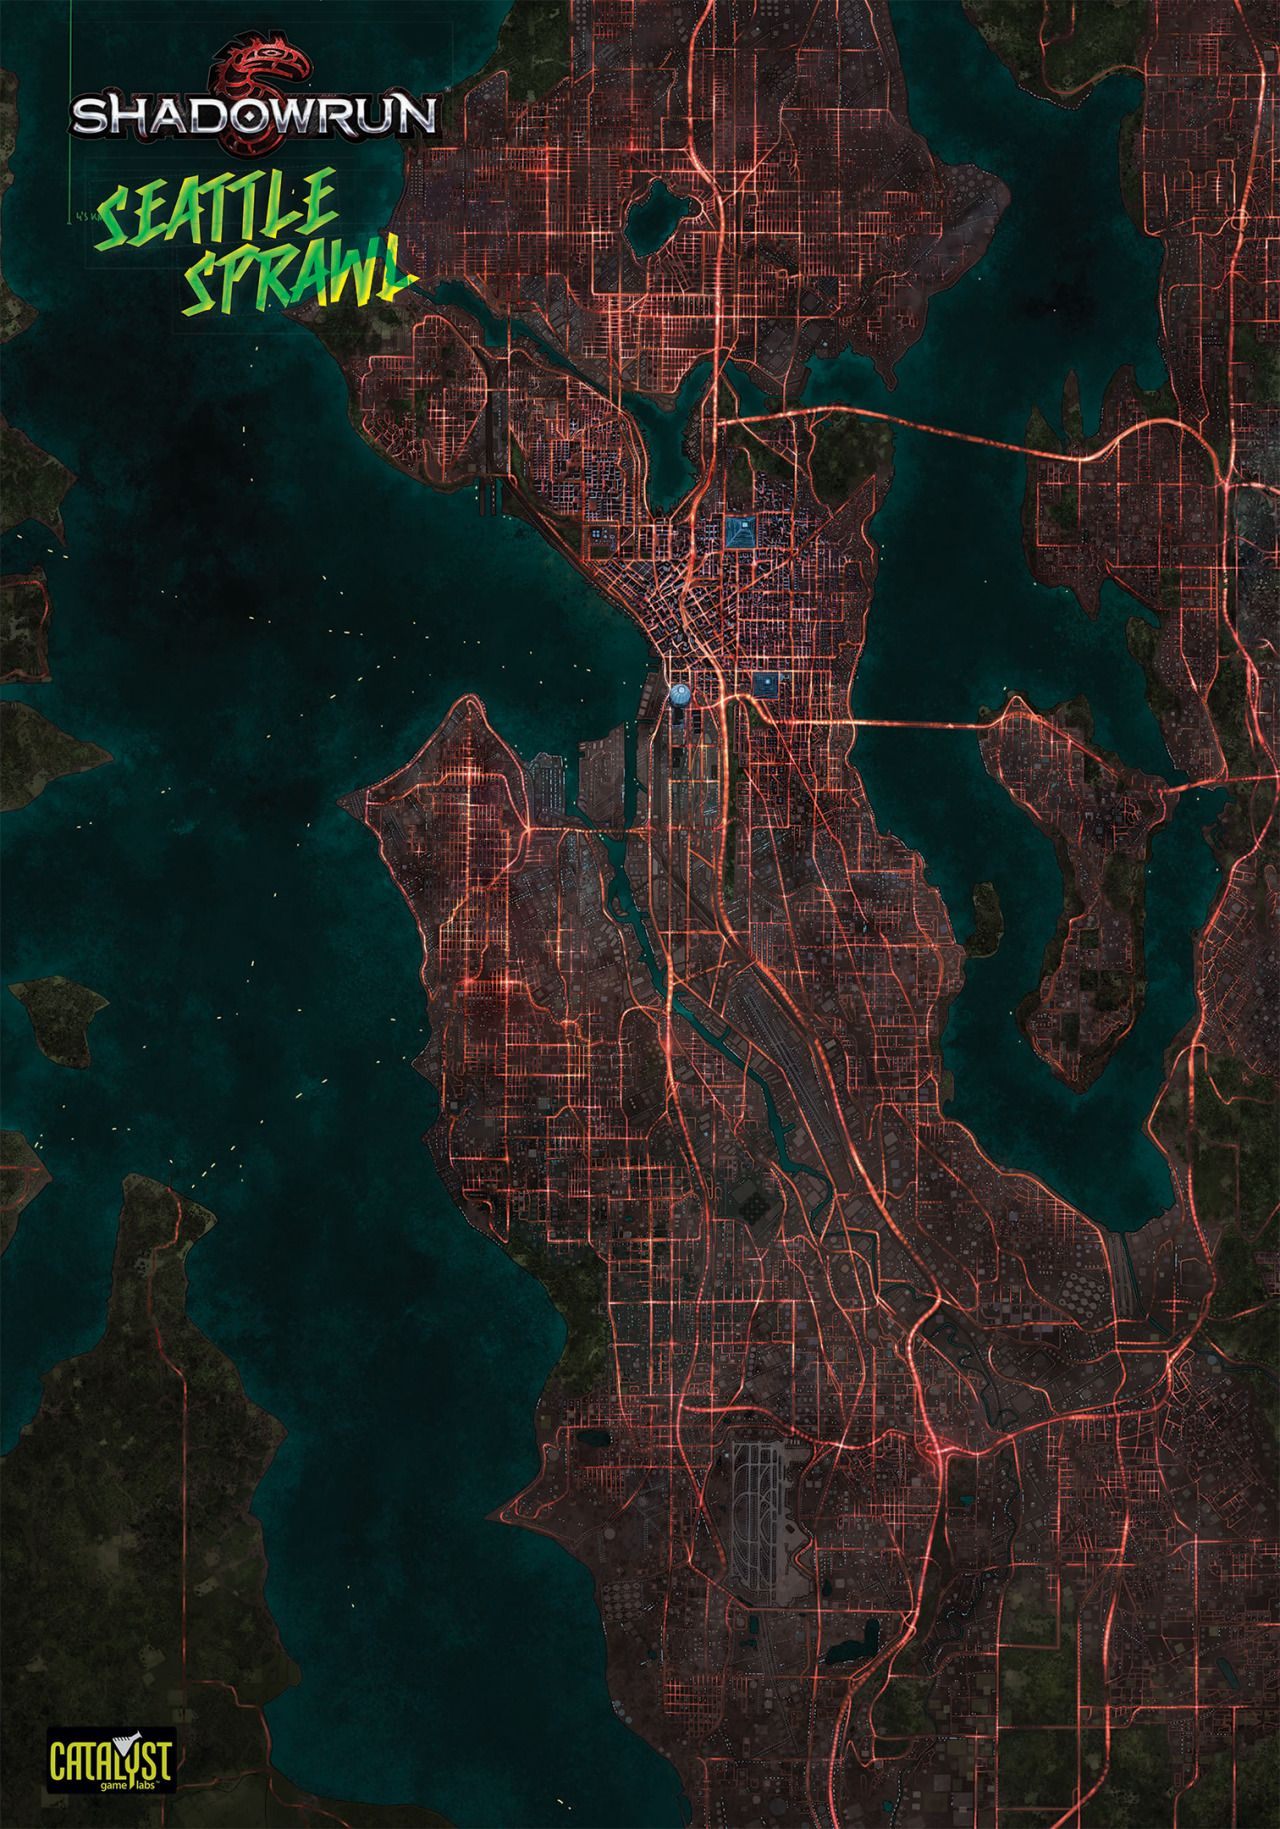 Shadowrun America Map.Map Of Seattle In Shadowrun Maps In 2019 Pinterest Shadowrun